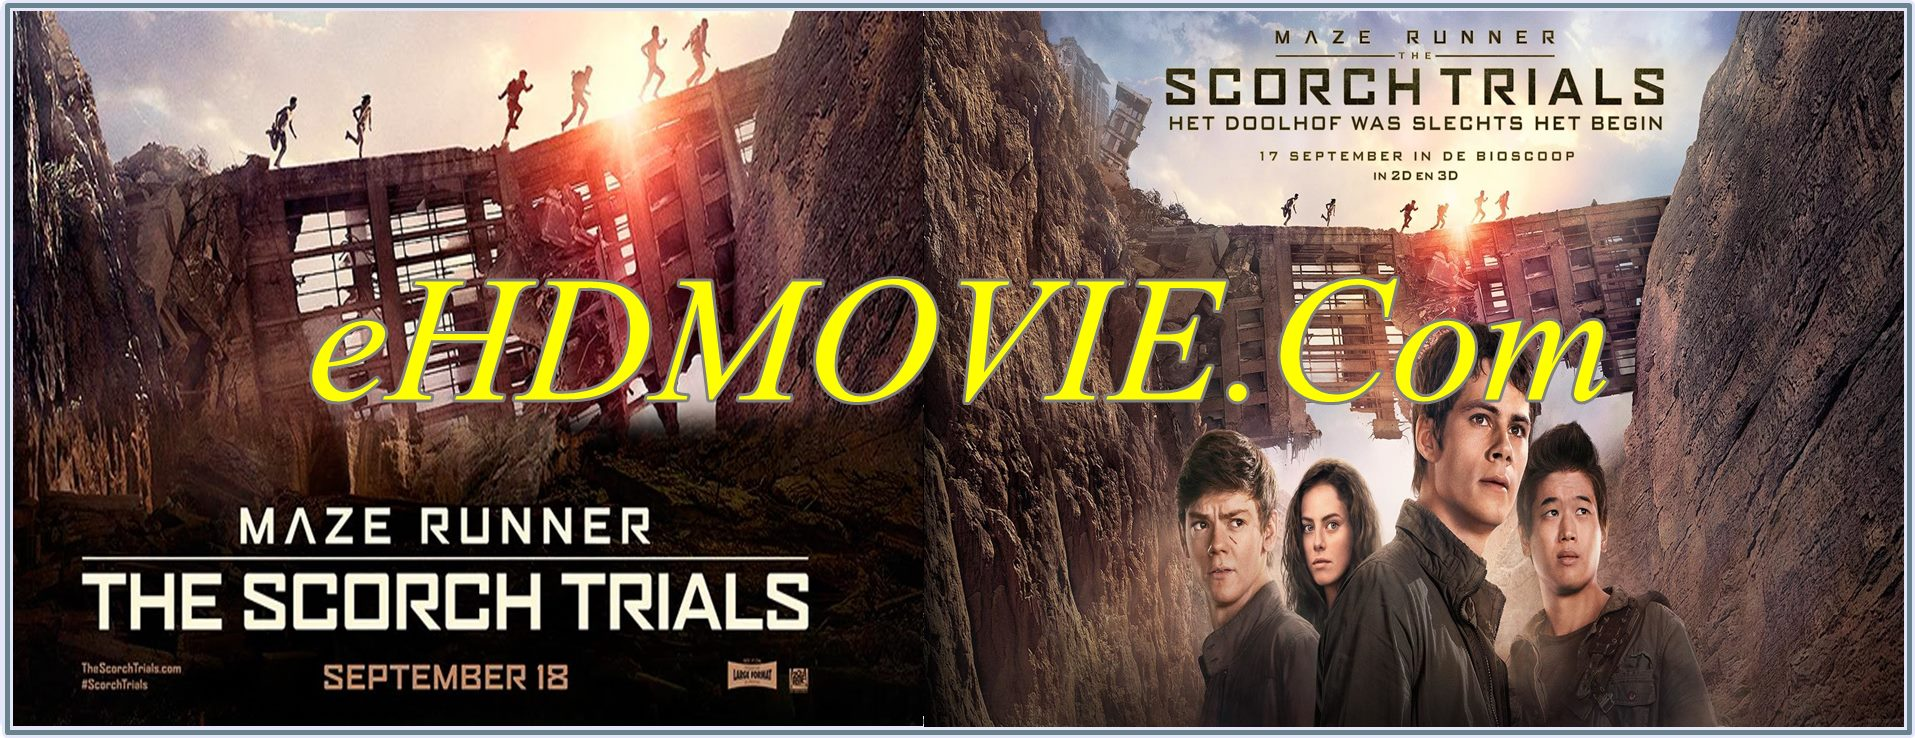 Maze Runner The Scorch Trials 2015 Full Movie Dual Audio [Hindi – English] 720p - 480p ORG BRRip 400MB - 1.4GB ESubs Free Download